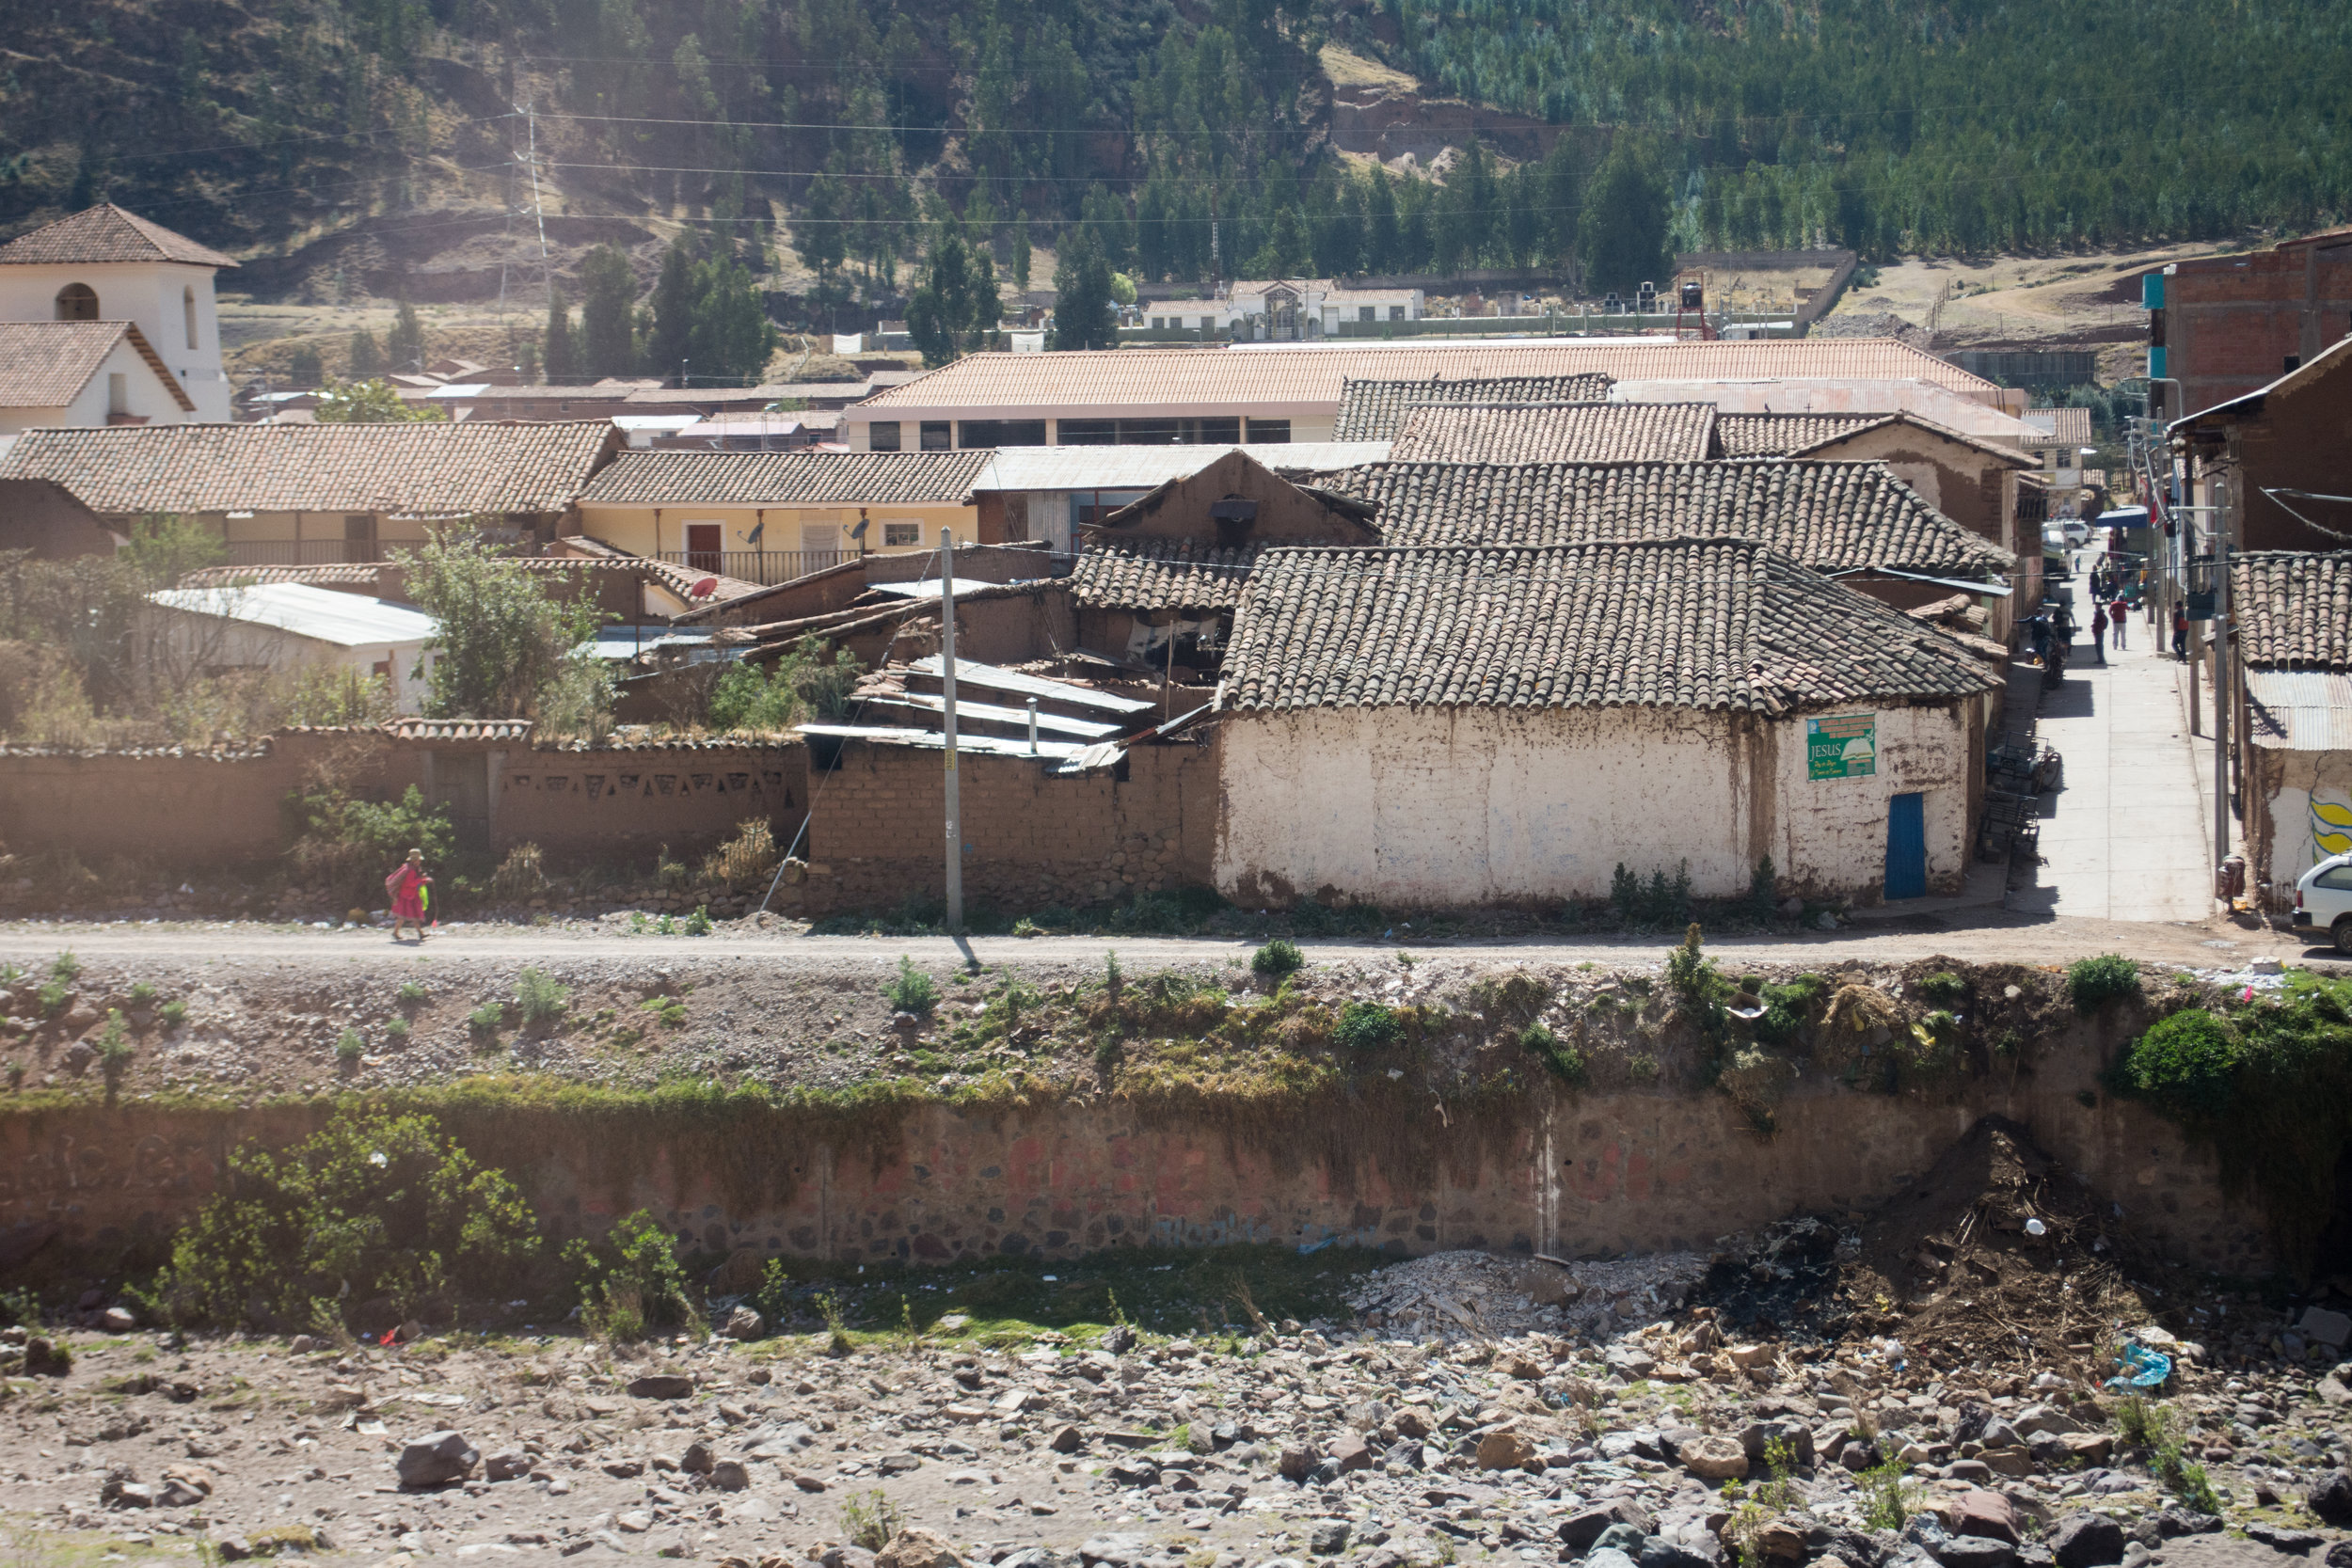 Village in Andean Mountains on Luxury Perurail Lake Titicaca Train